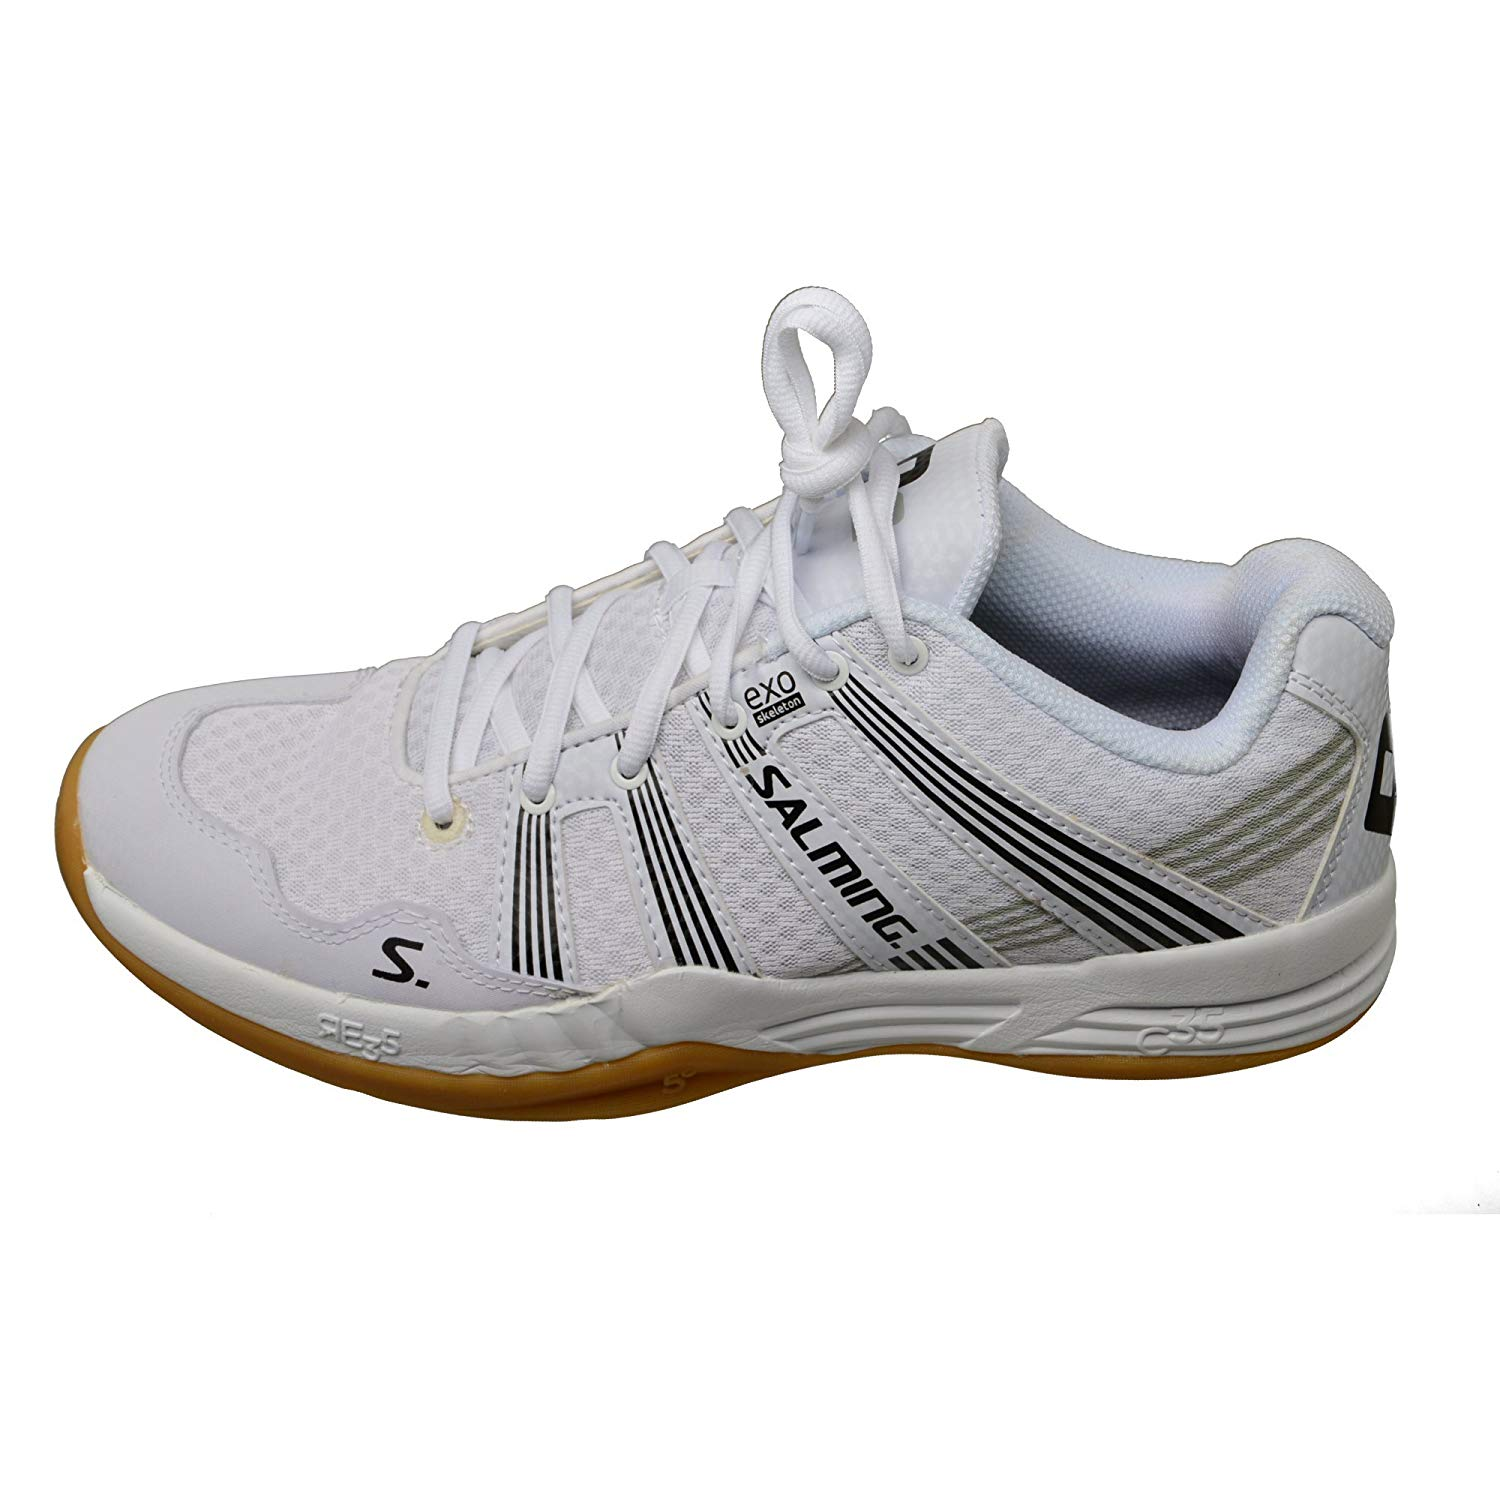 Salming Race R2 3.0 Mens White Court Shoes 11.5 US